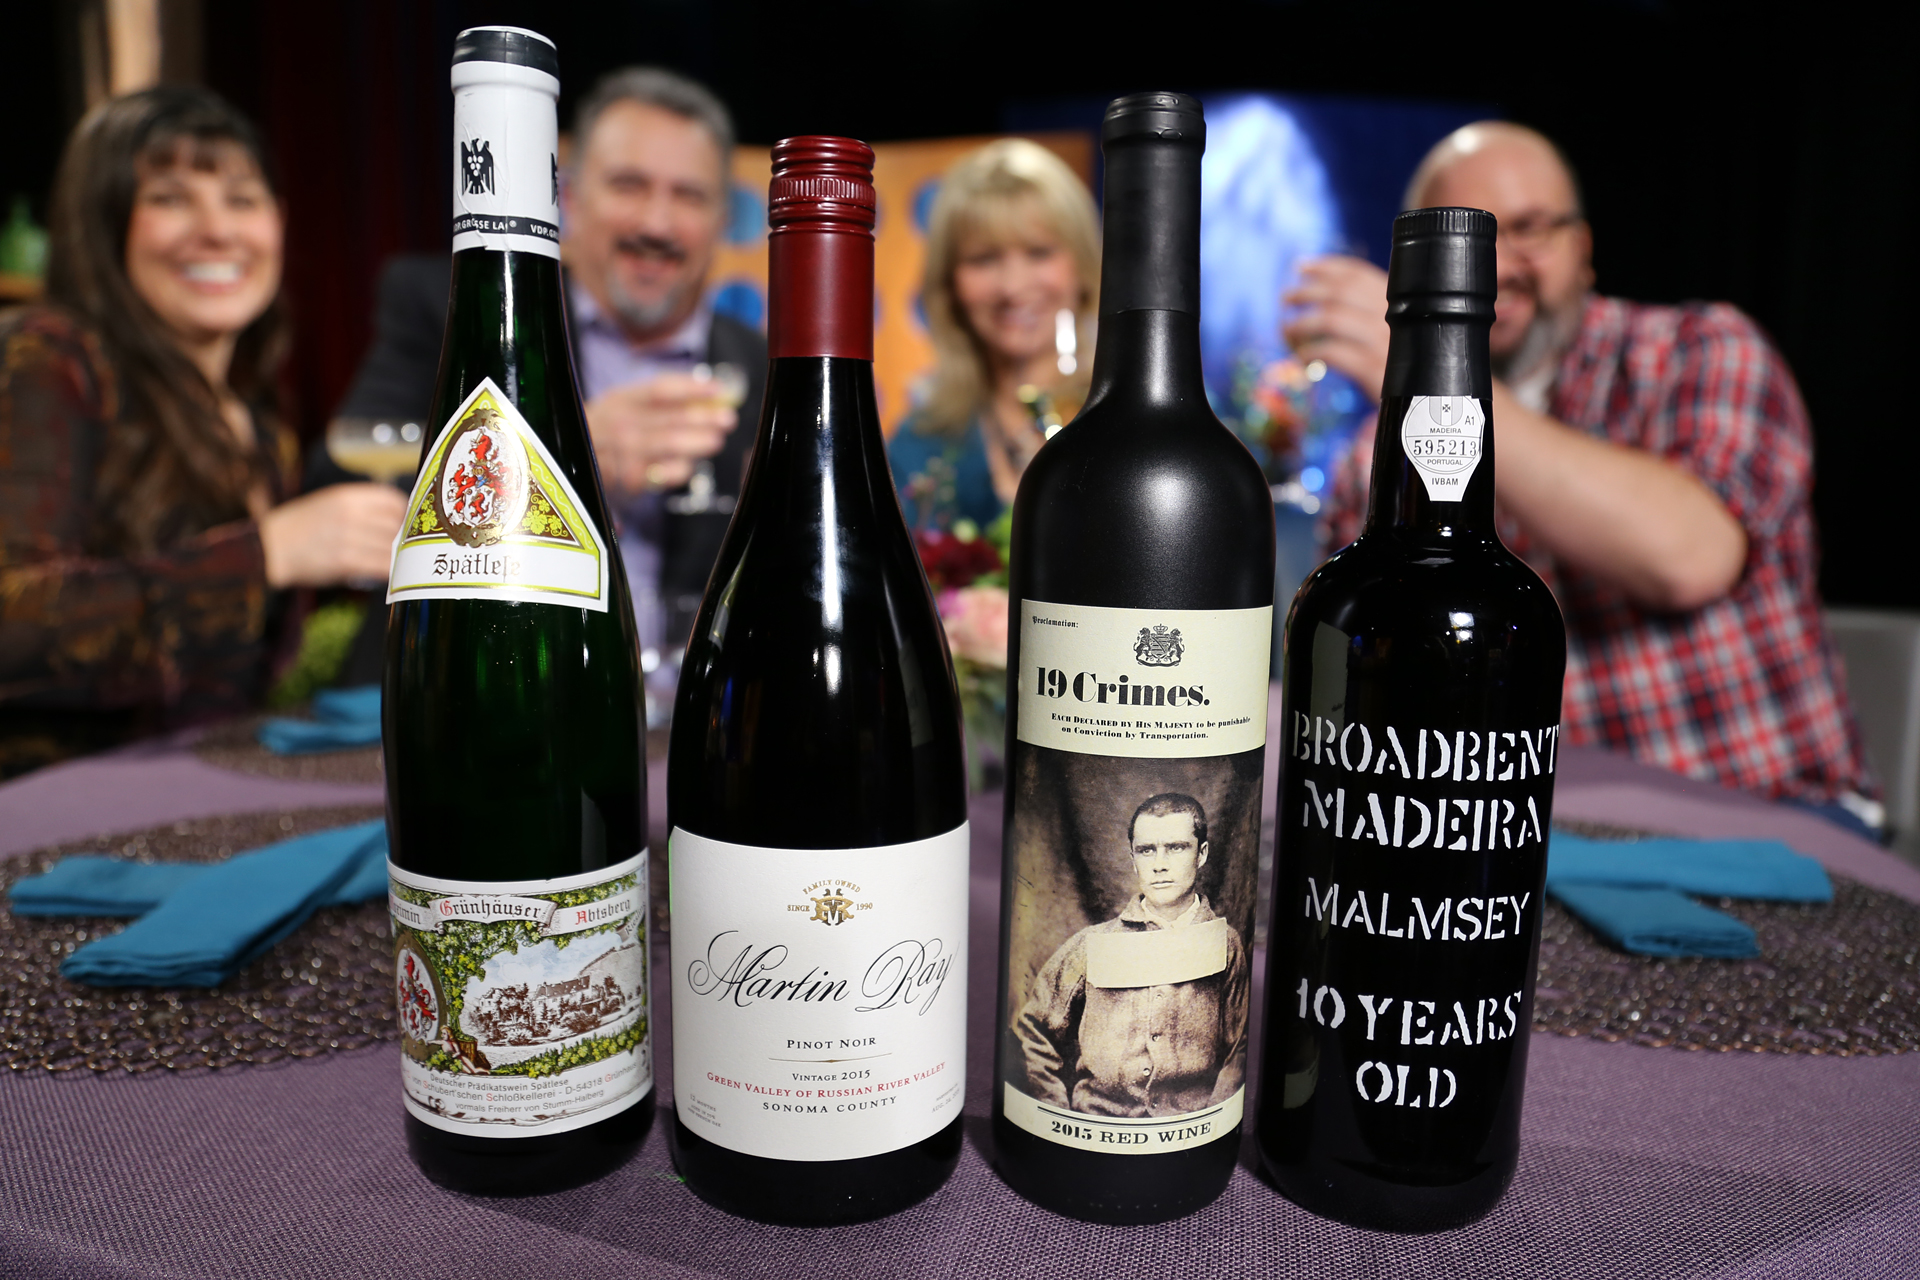 Wine that guests drank on the set of season 12 episode 6.